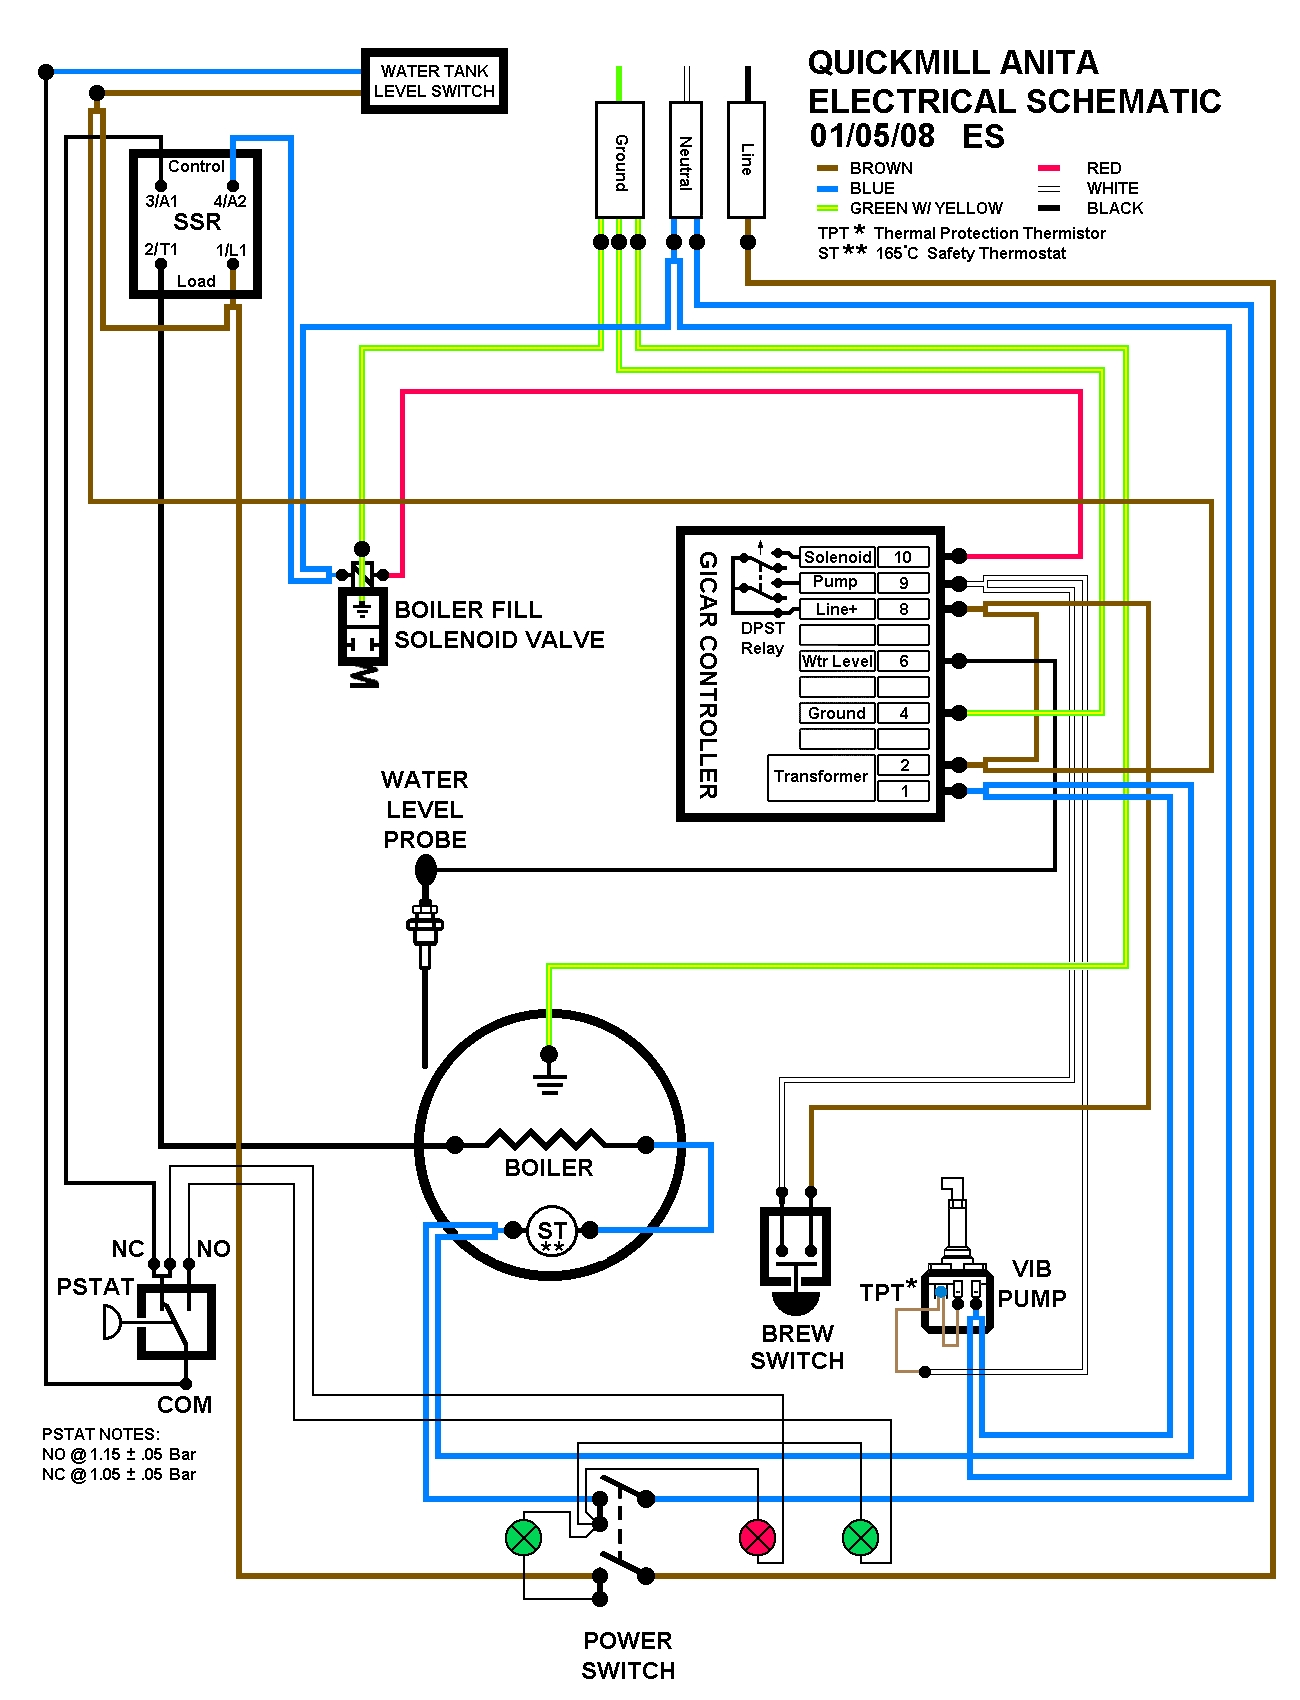 electric boiler wiring diagrams class diagram for hotel reservation system home schematic electrical symbols best library boilers and manuals hot water